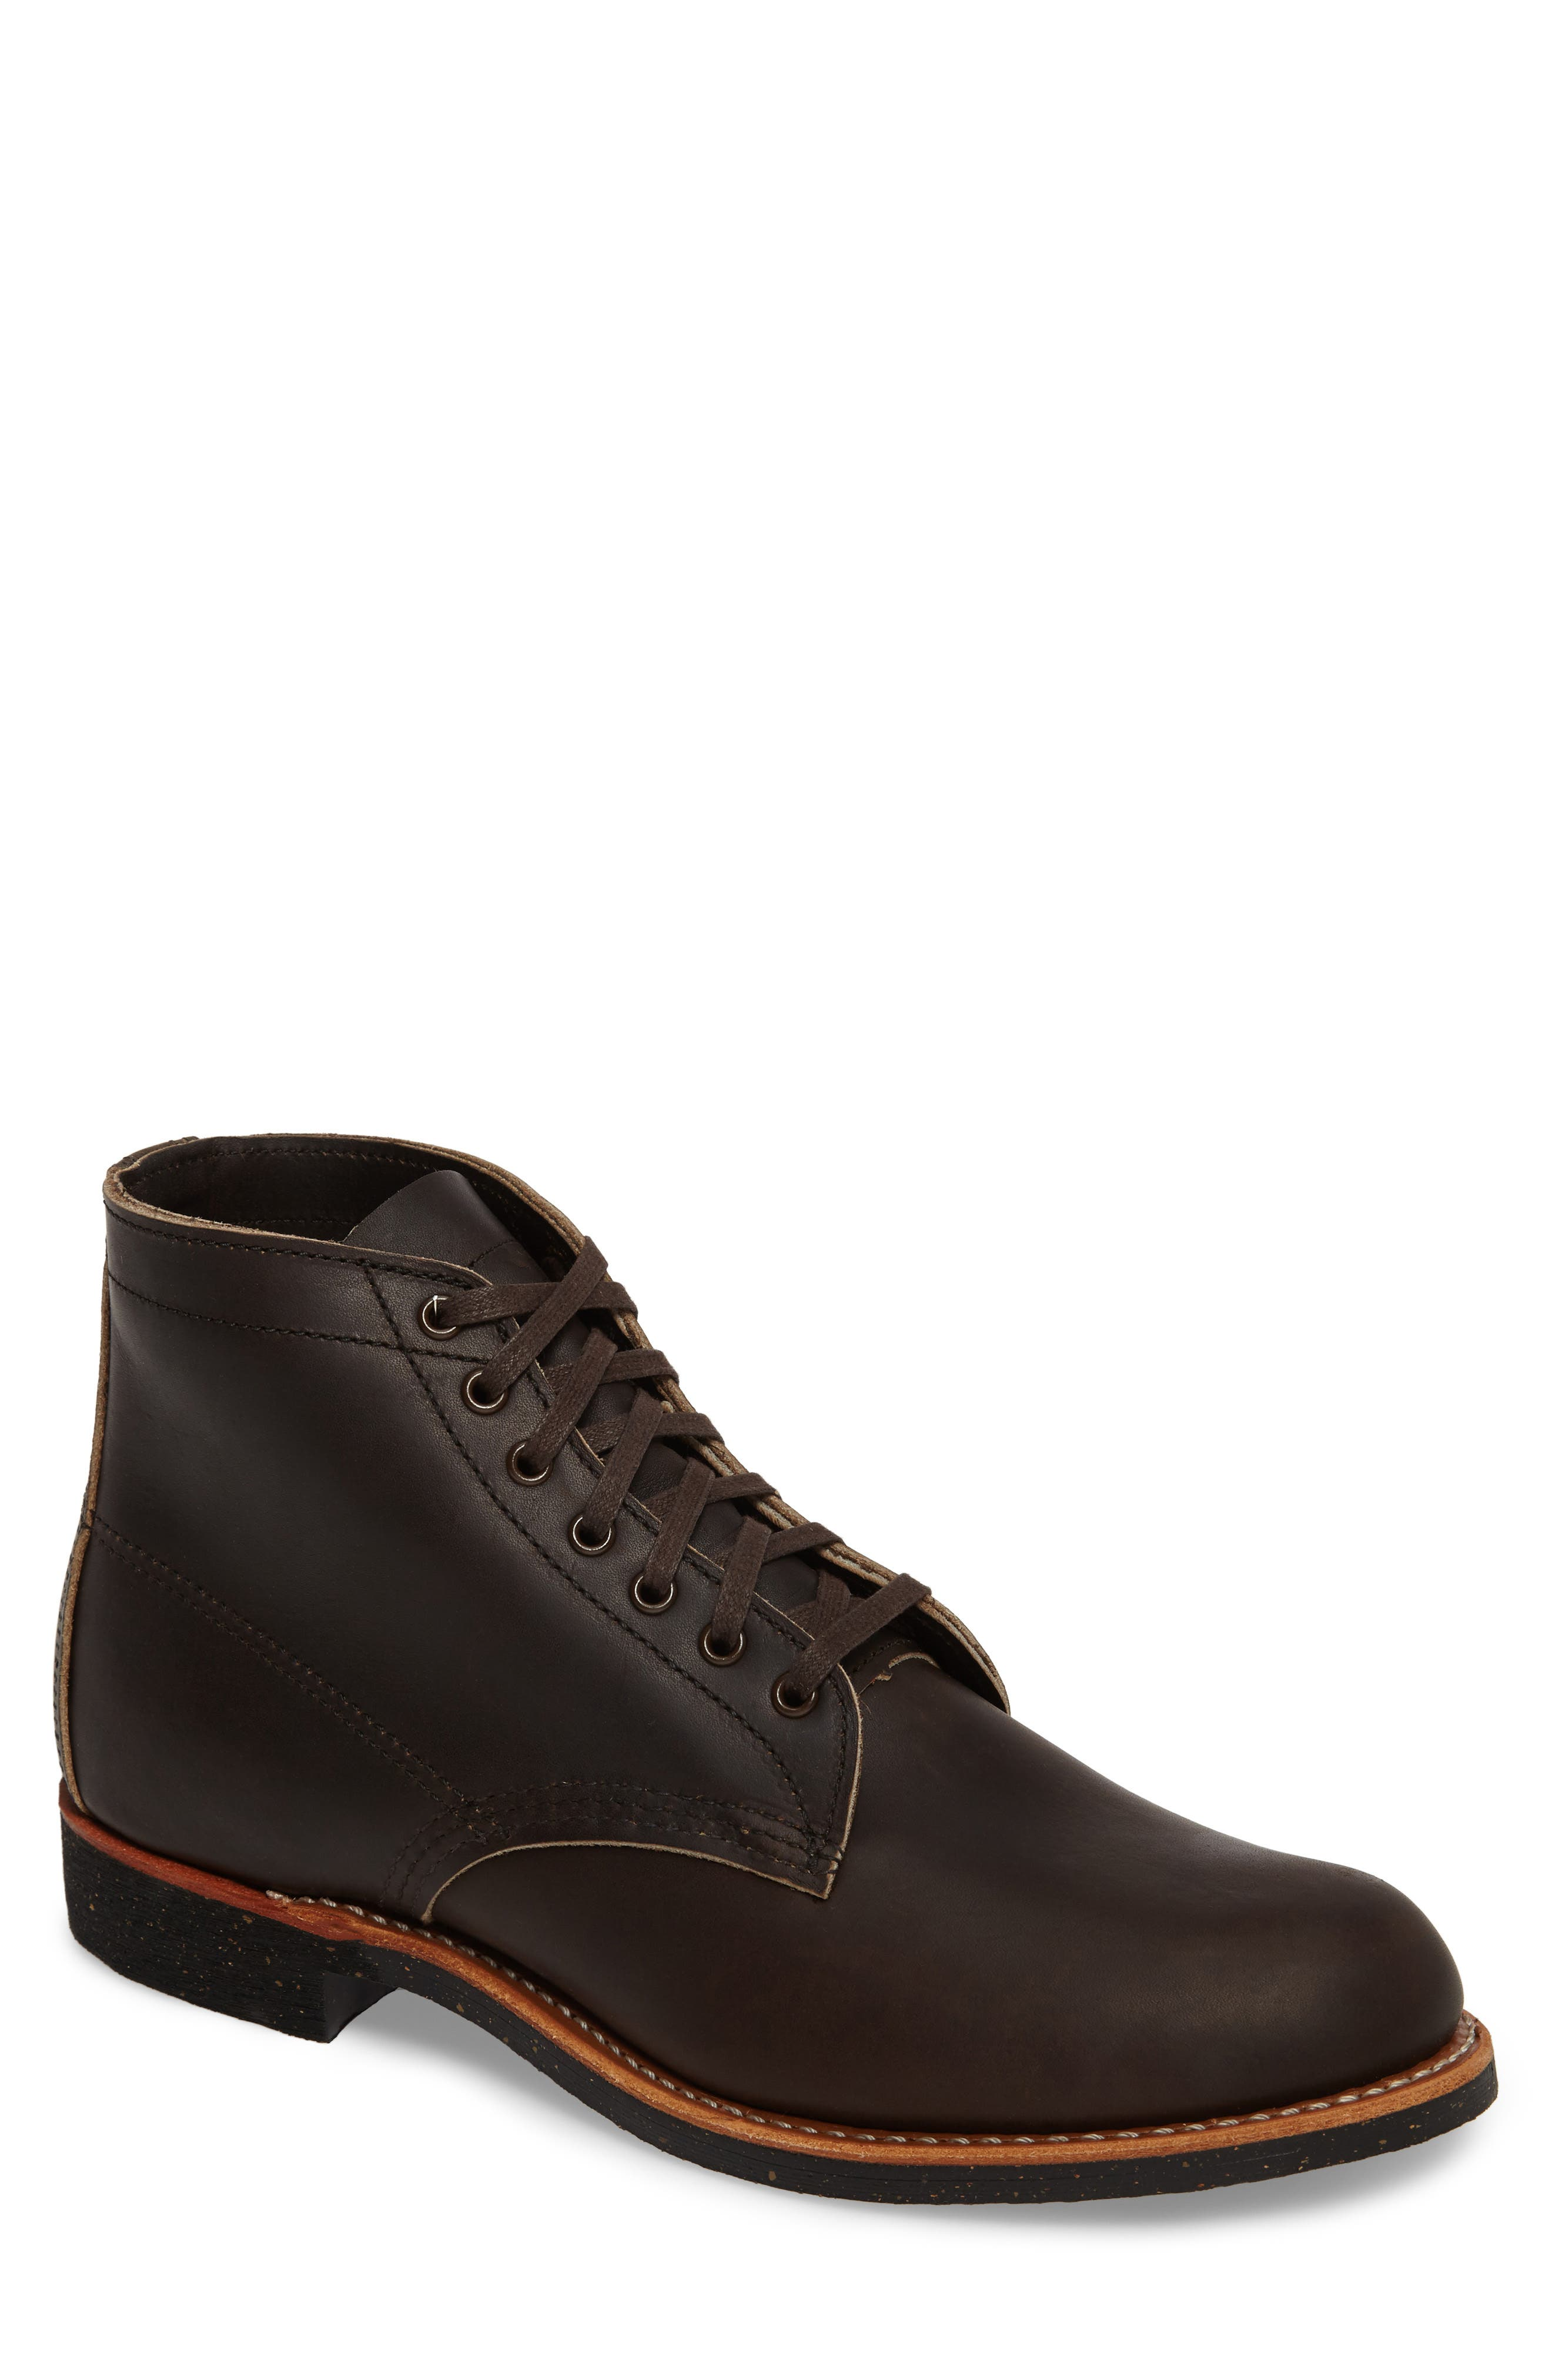 RED WING,                             Merchant Boot,                             Main thumbnail 1, color,                             EBONY HARNESS LEATHER